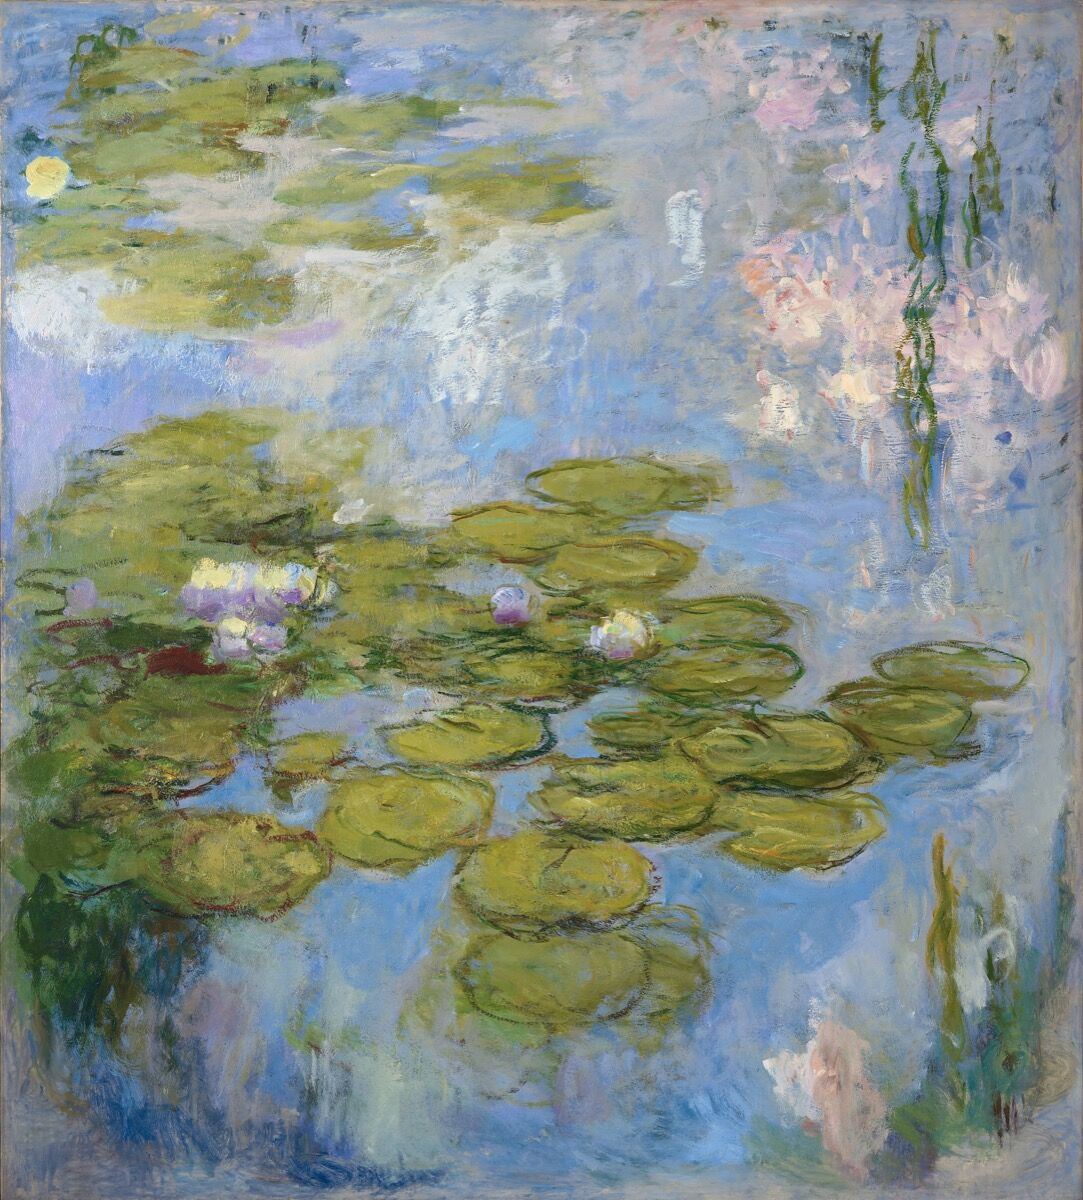 Claude Monet, Nymphéas, 1916-19. Fondation Beyeler.